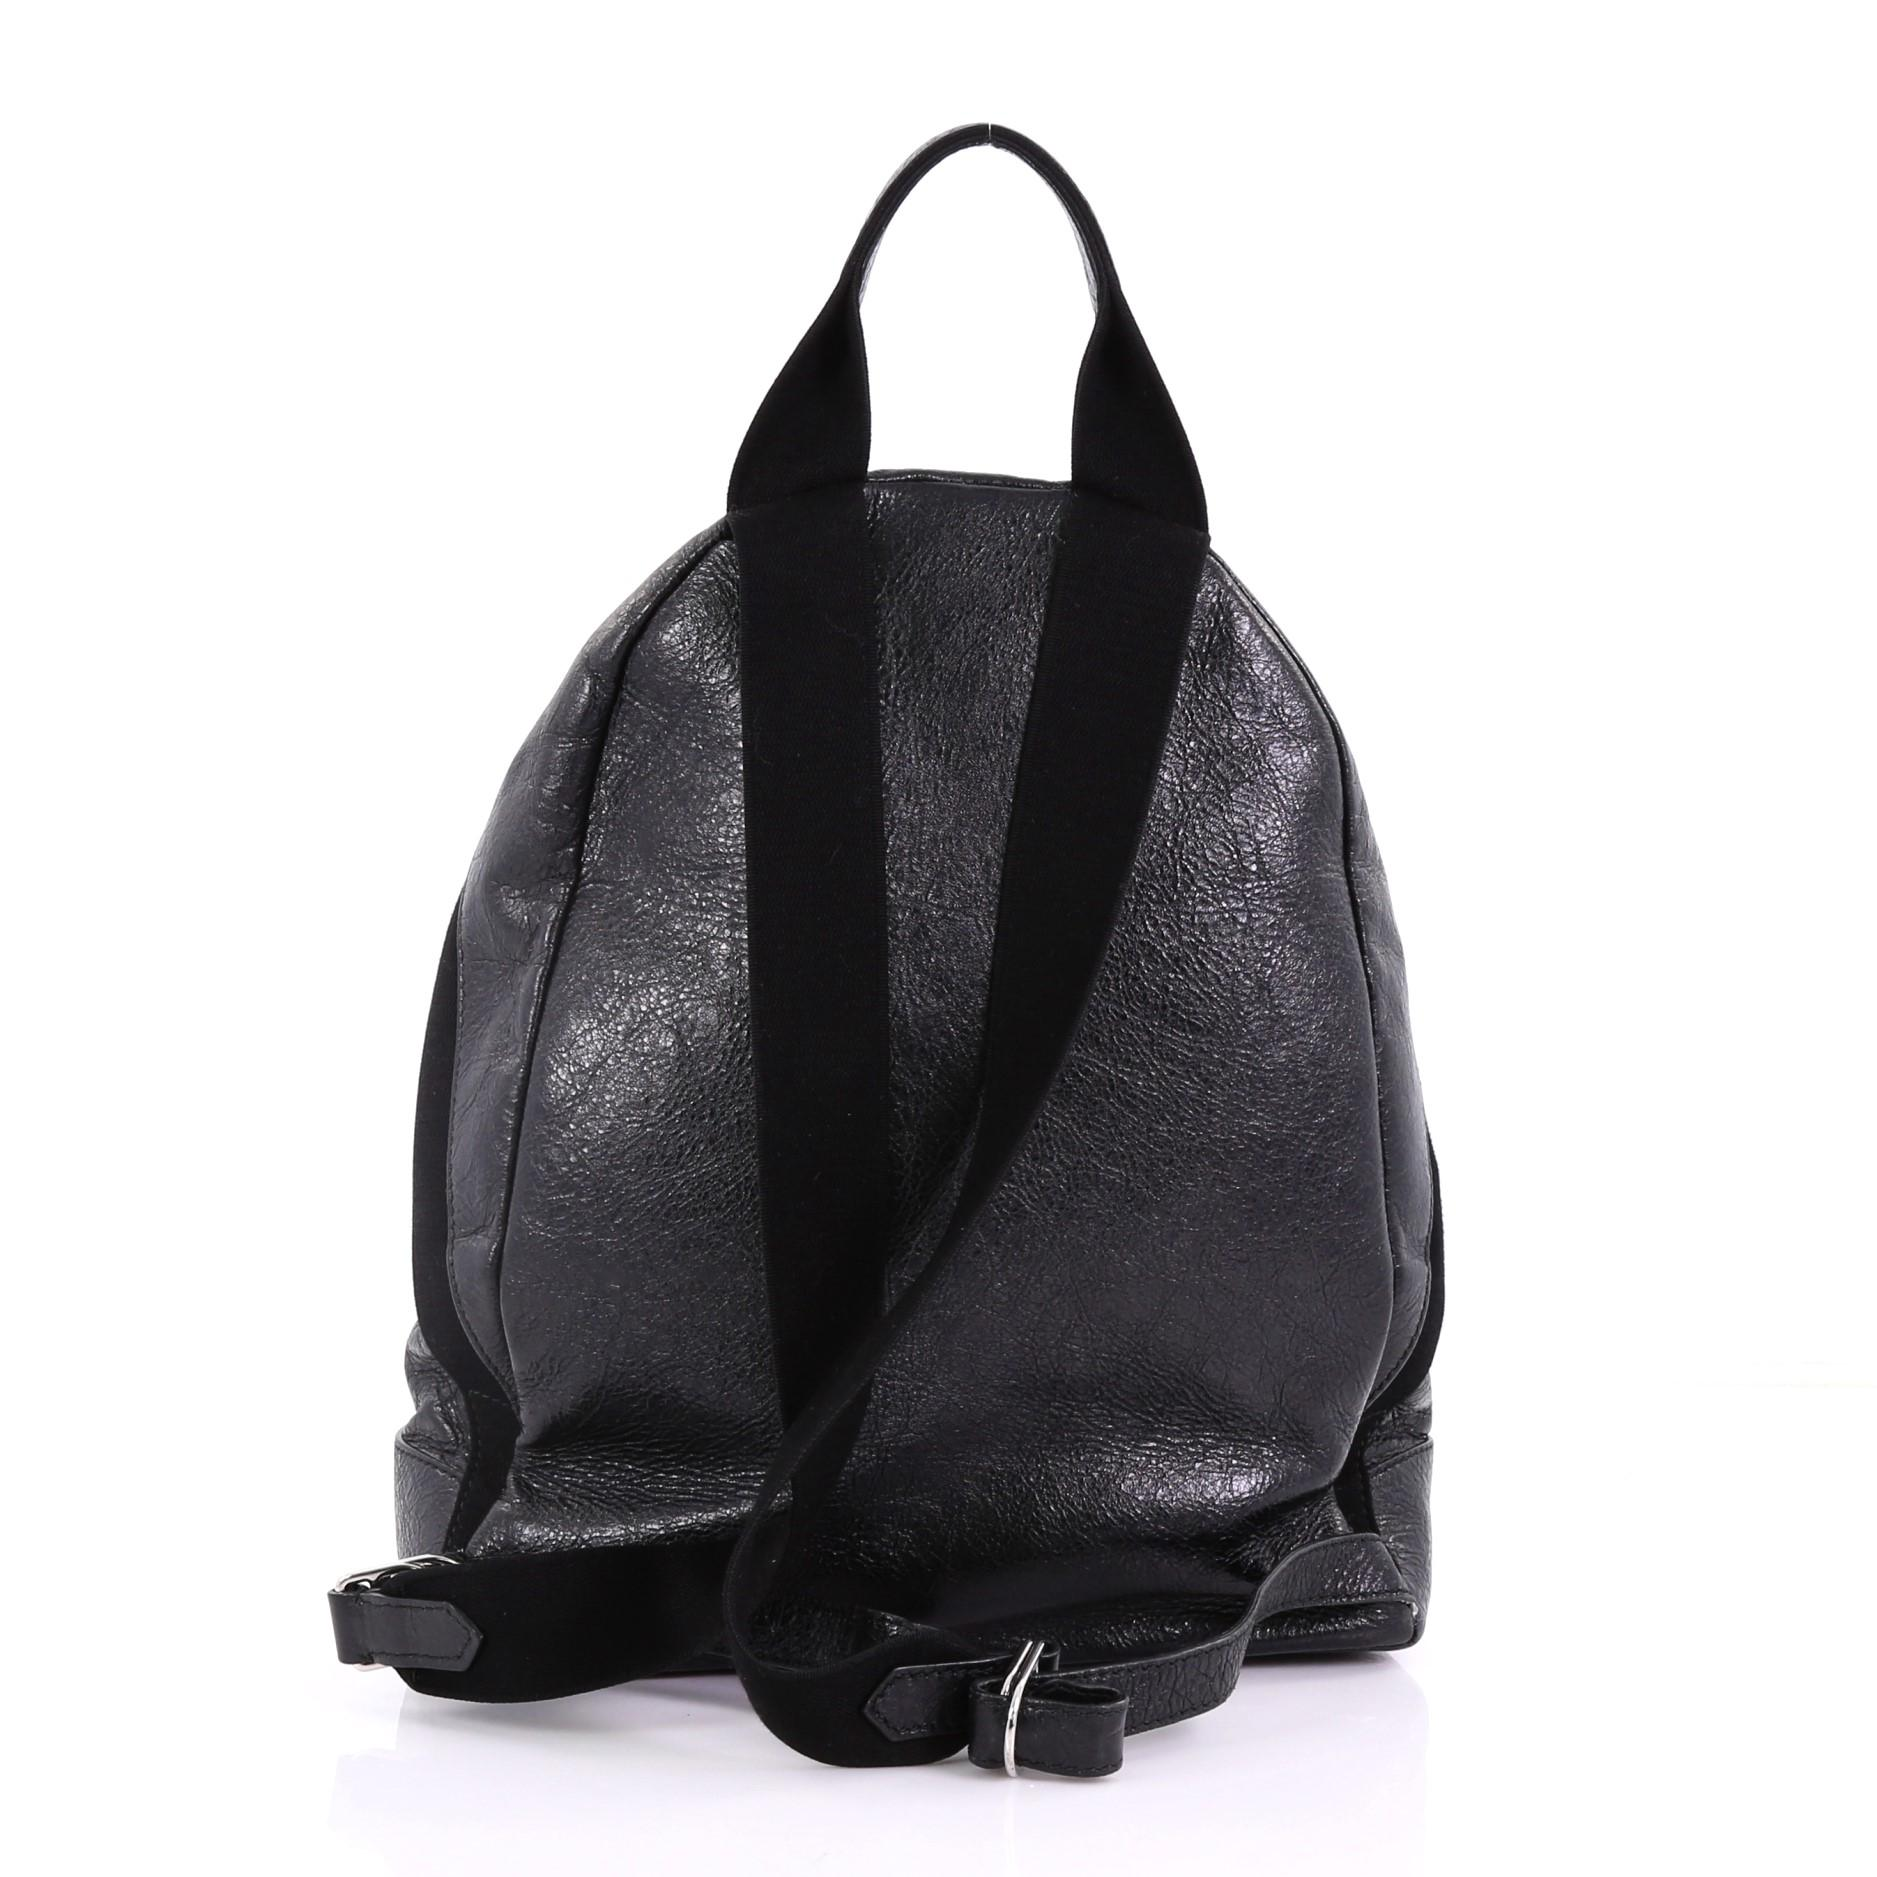 fdd05a405 Balenciaga Navy Backpack Leather at 1stdibs